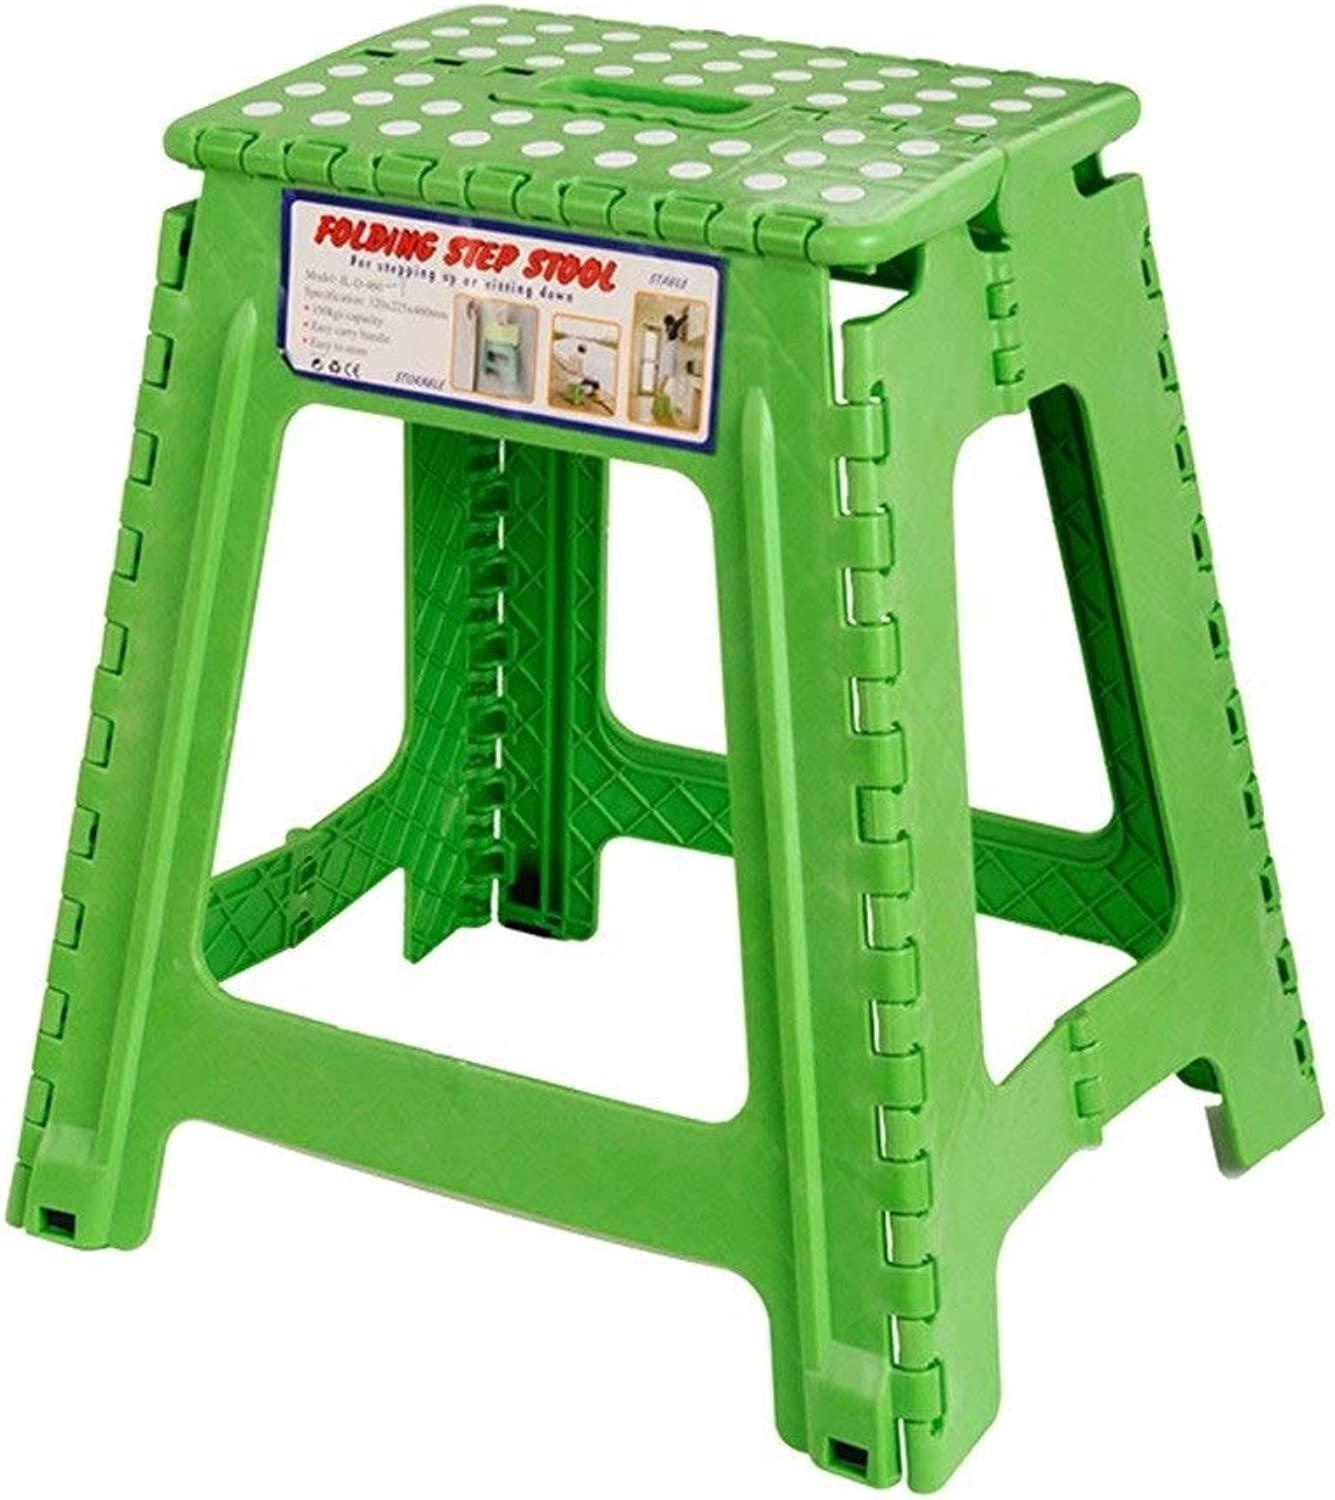 JKPA - Chairs Folding Step Stool Multi Purpose Plastic Home Kitchen Foldable Easy Storage Small Stepstool Portable Stepping Stool ( color   A )